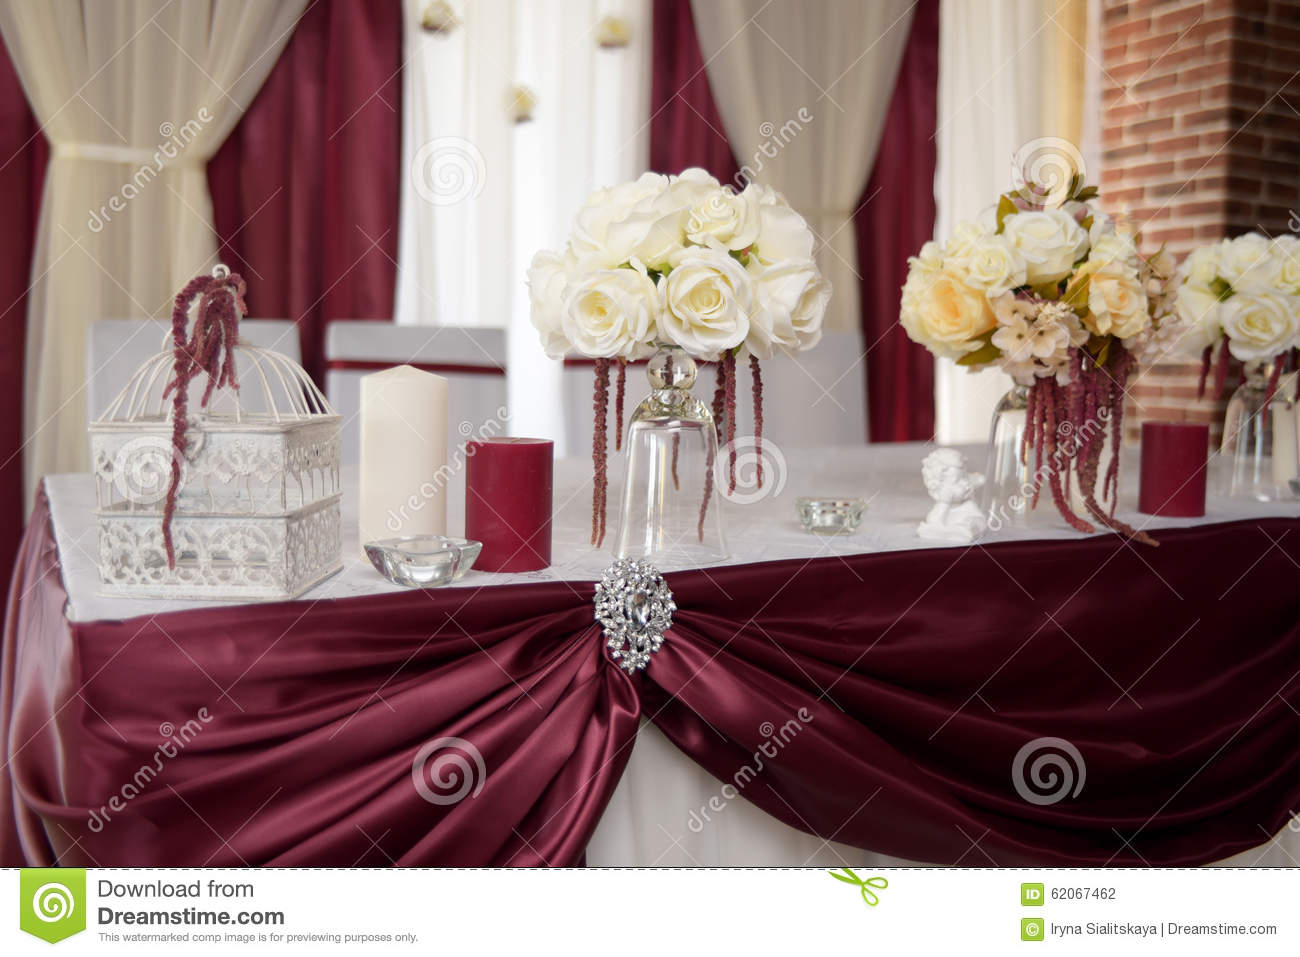 Wedding decor color marsala stock photo image of beautiful download comp junglespirit Image collections